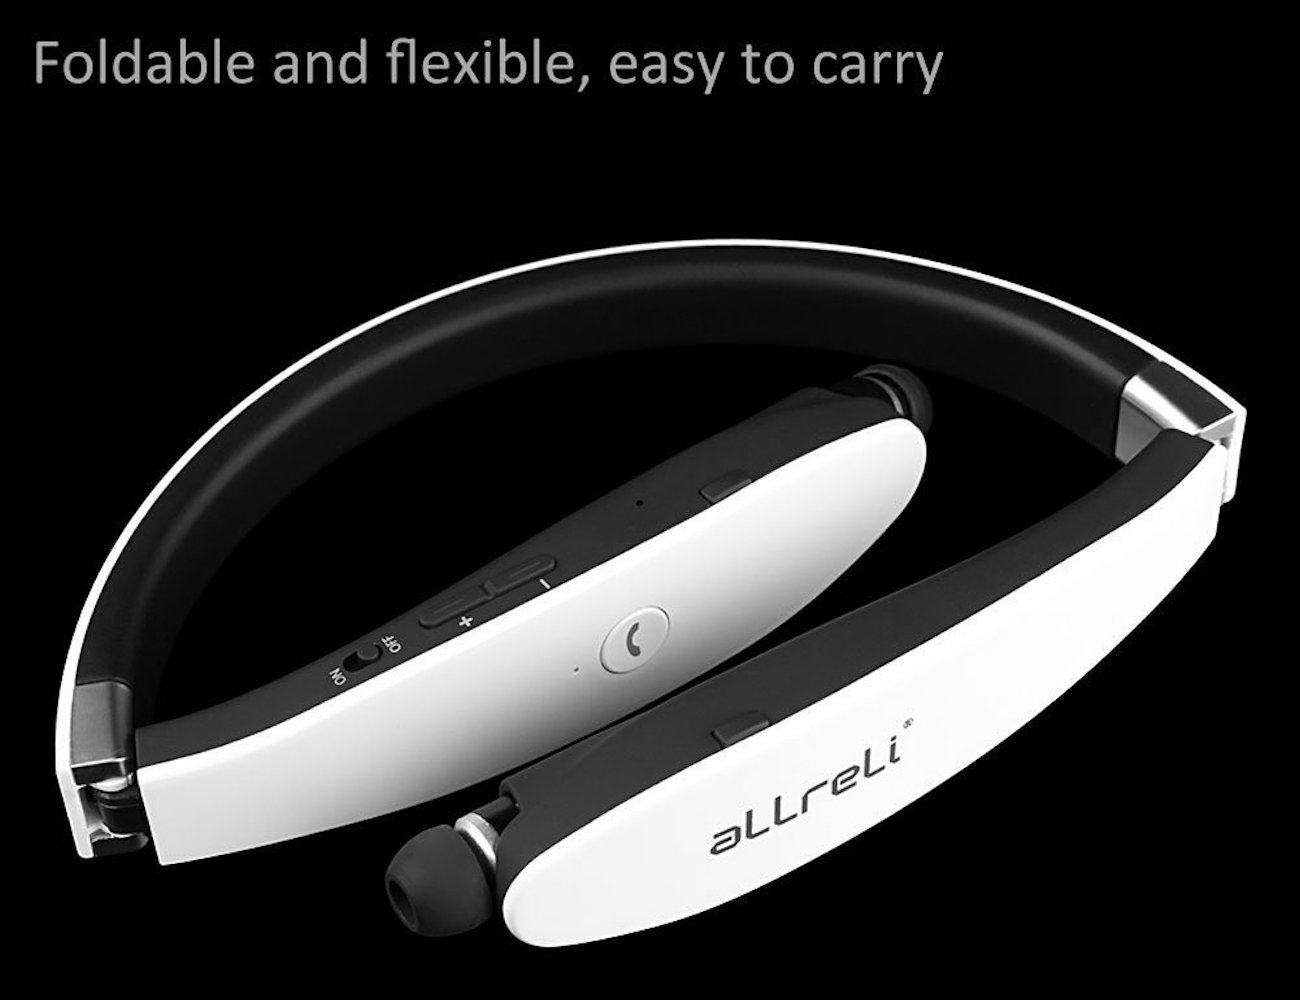 aLLreLi-Soba-Retractable-Speaker-4